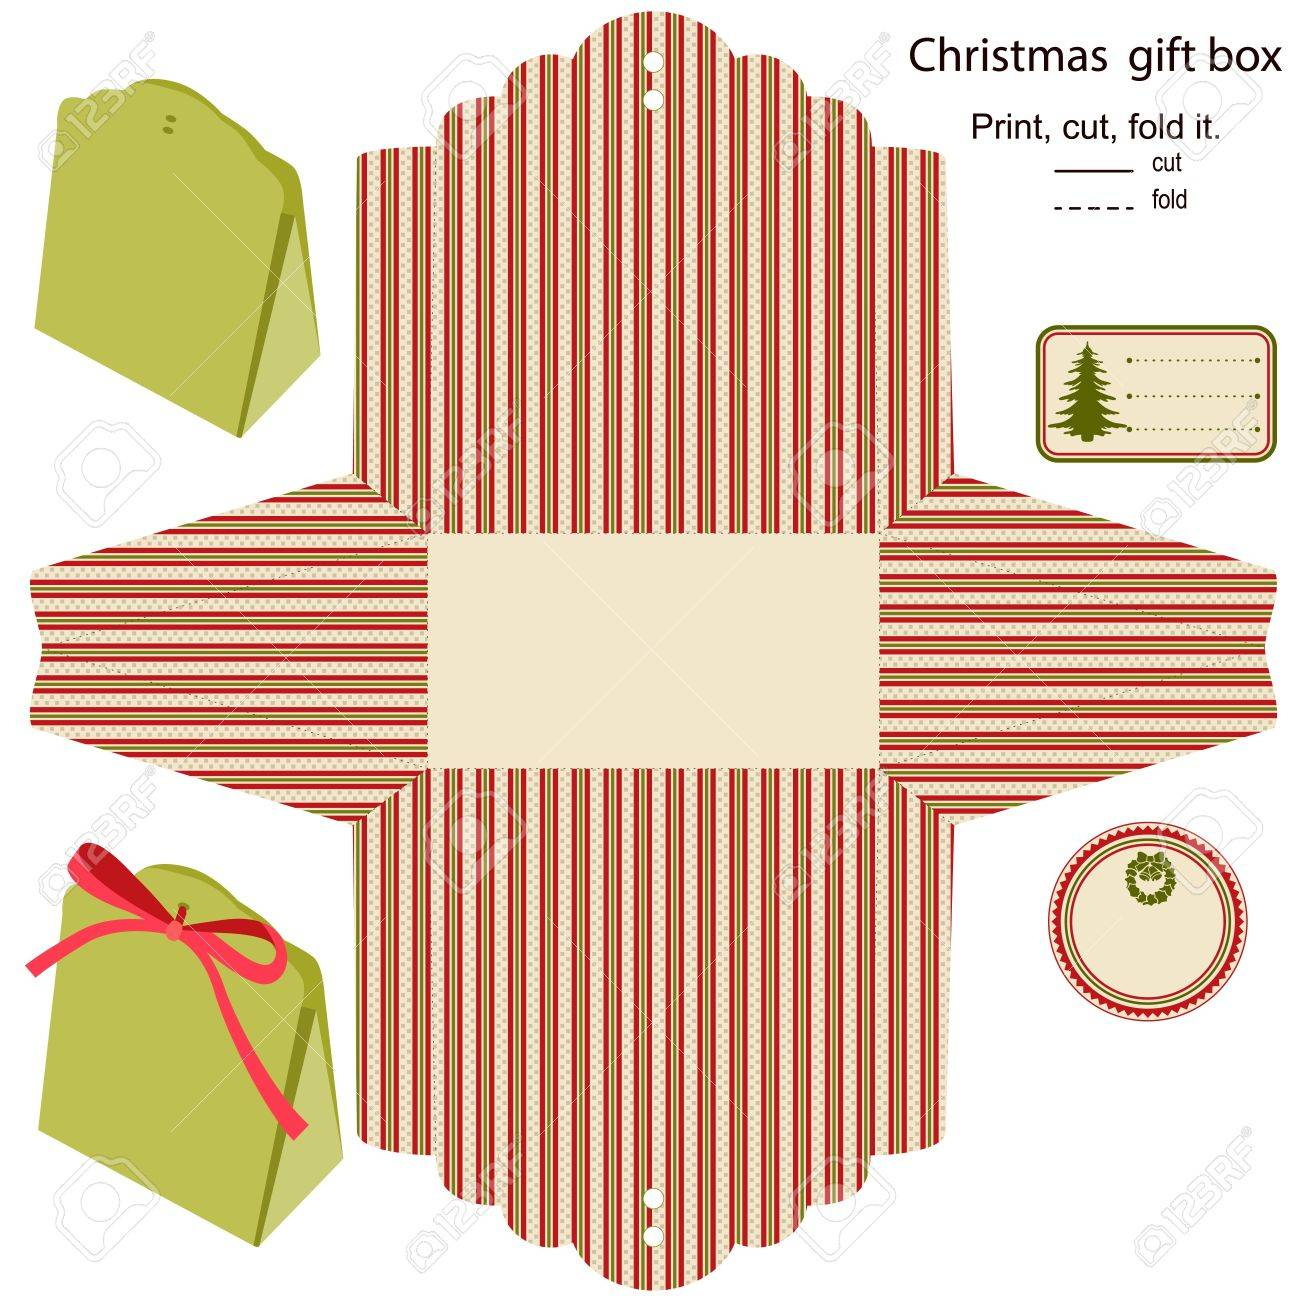 Gift box  Isolated  Christmas pattern  Empty label  Template Stock Vector - 15762022